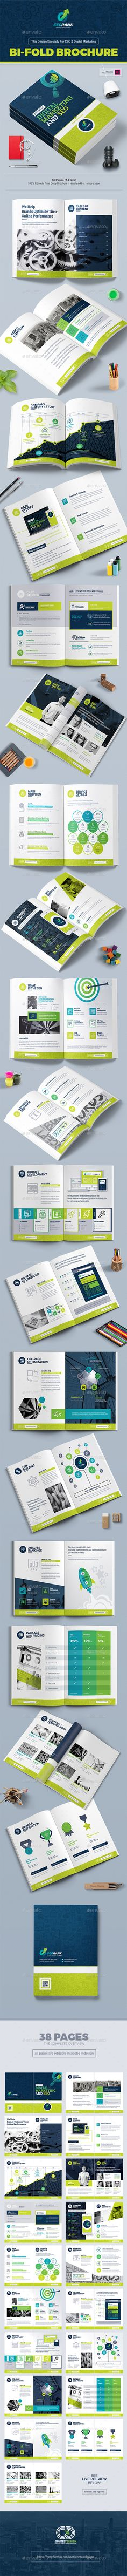 Bi-Fold Brochure Template for SEO (Search Engine Optimization) & Digital Marketing Agency / Company